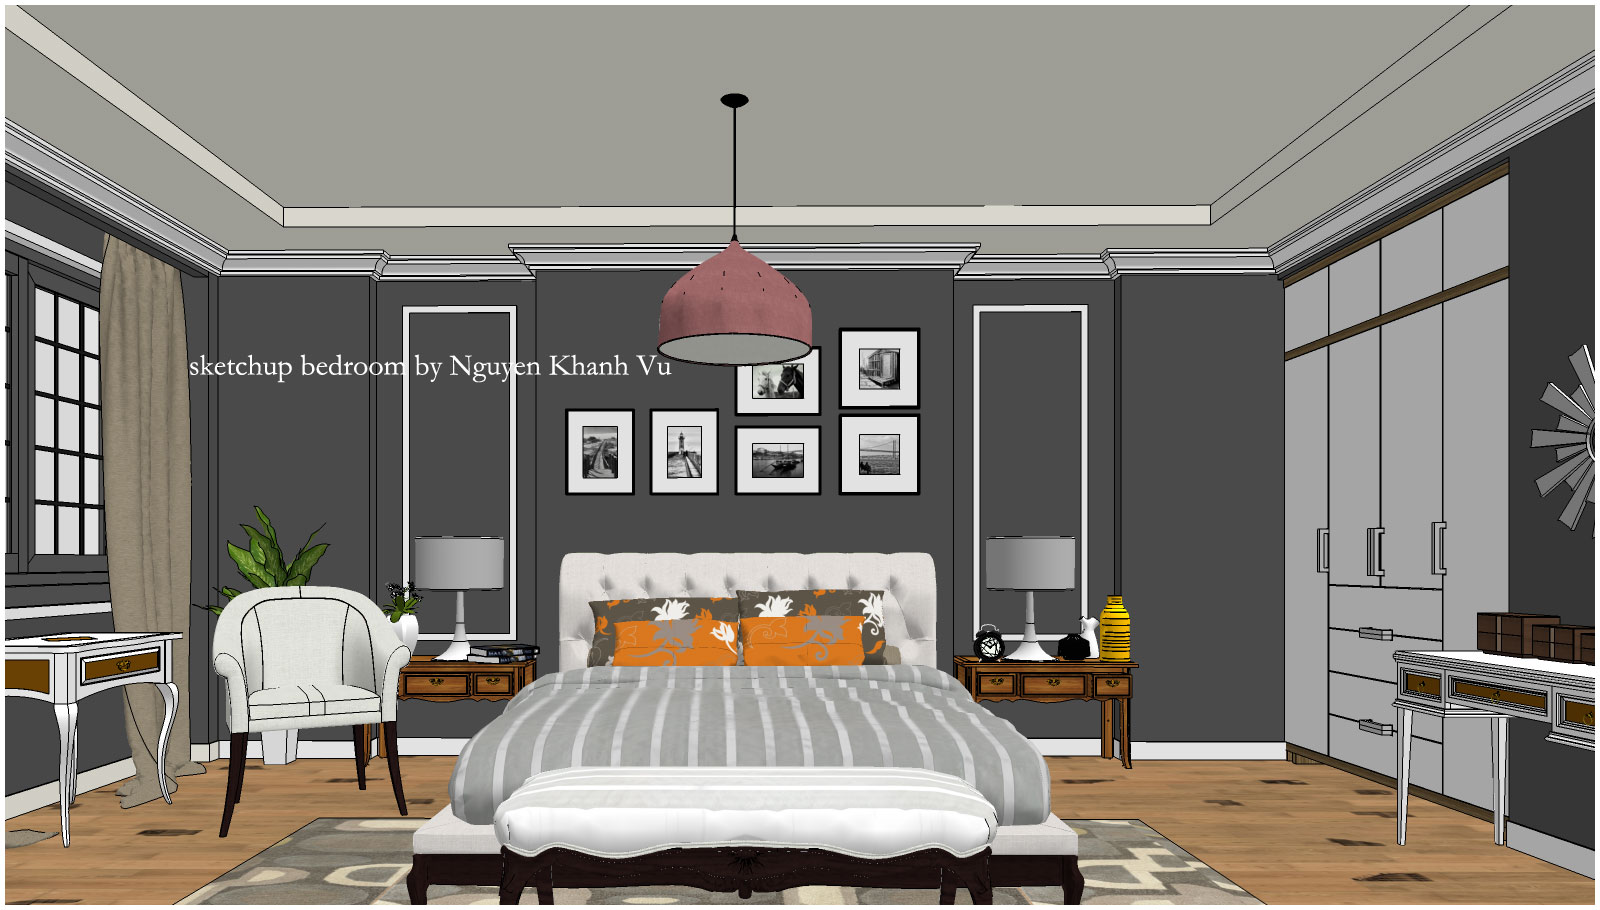 Model Bedroom sketchup texture: free 3d model bedroom #5 vray 1.6 setting